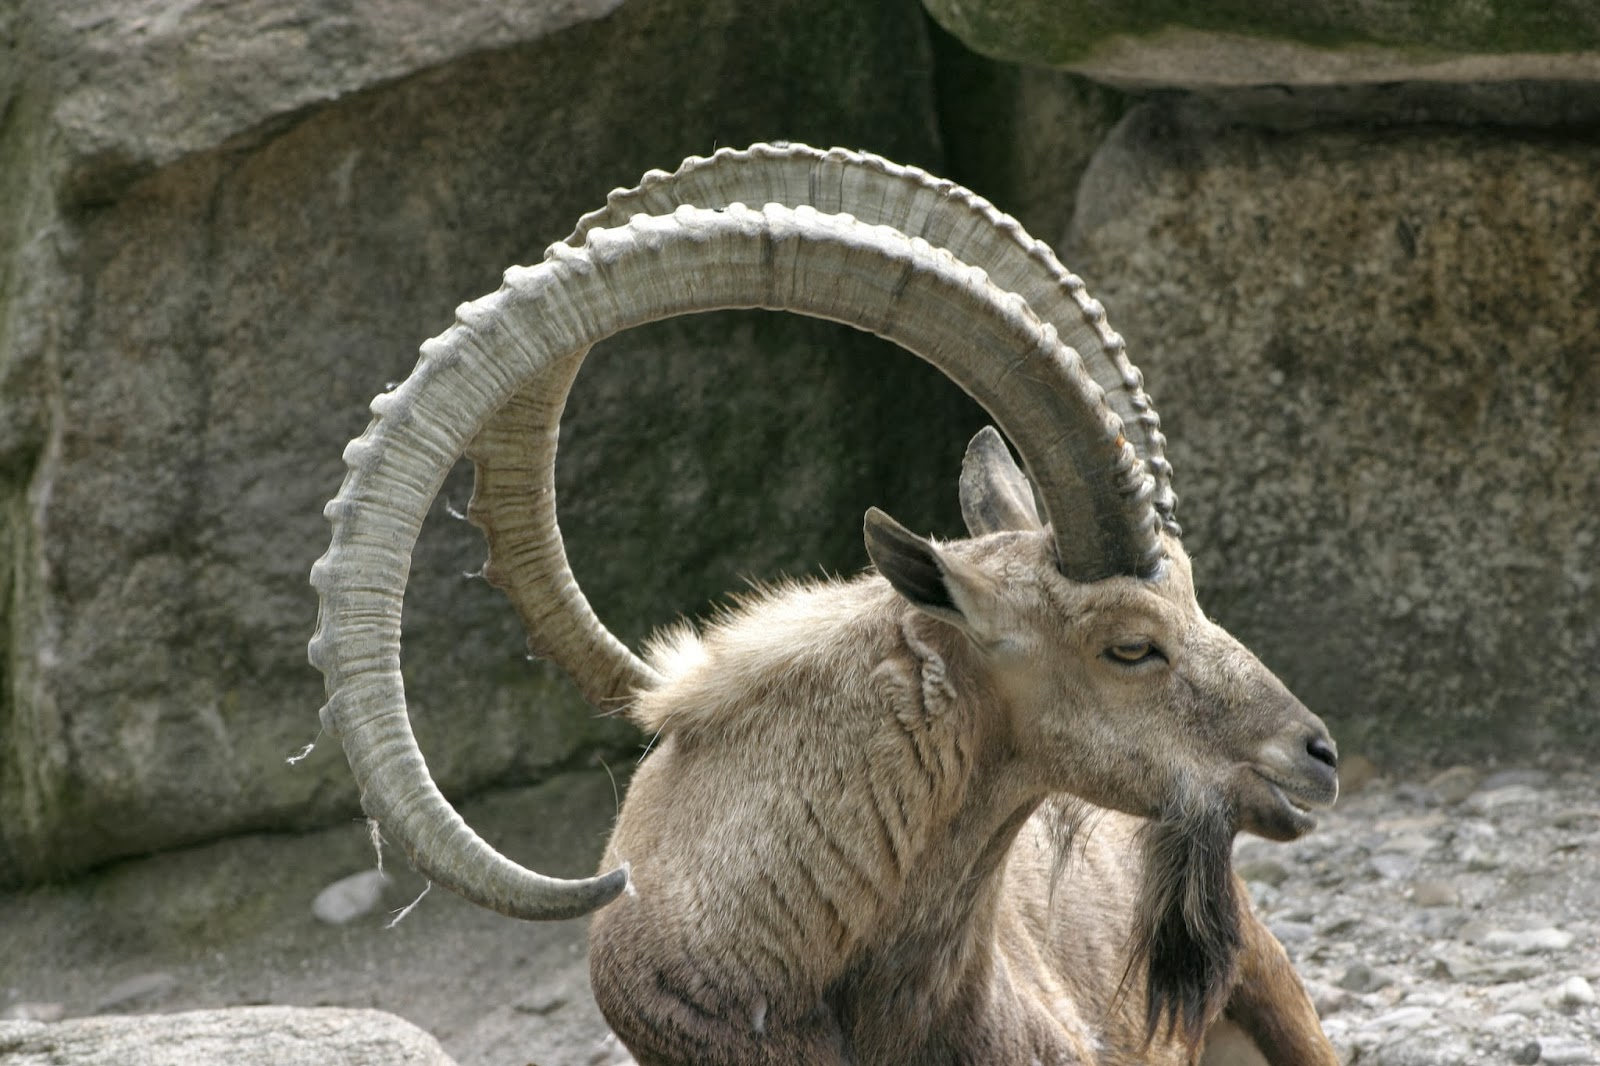 Rams Horn Sheep And Mountain Goats And Some Adorablosity